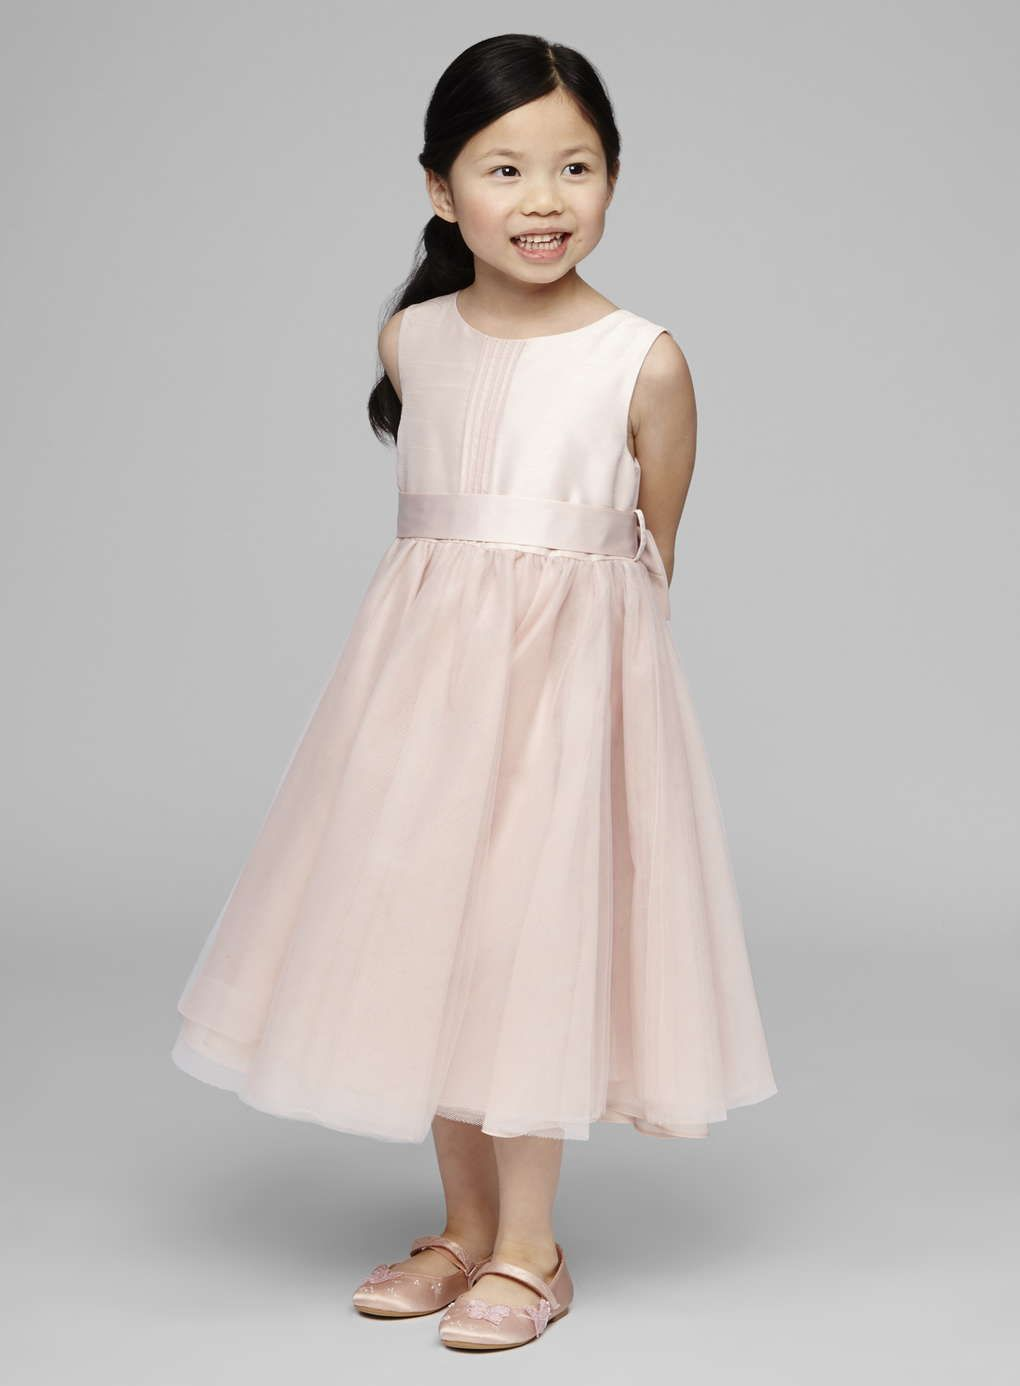 Millie tutu blush flower girl dress bhs lauras wedding millie tutu blush flower girl dress bhs ombrellifo Gallery